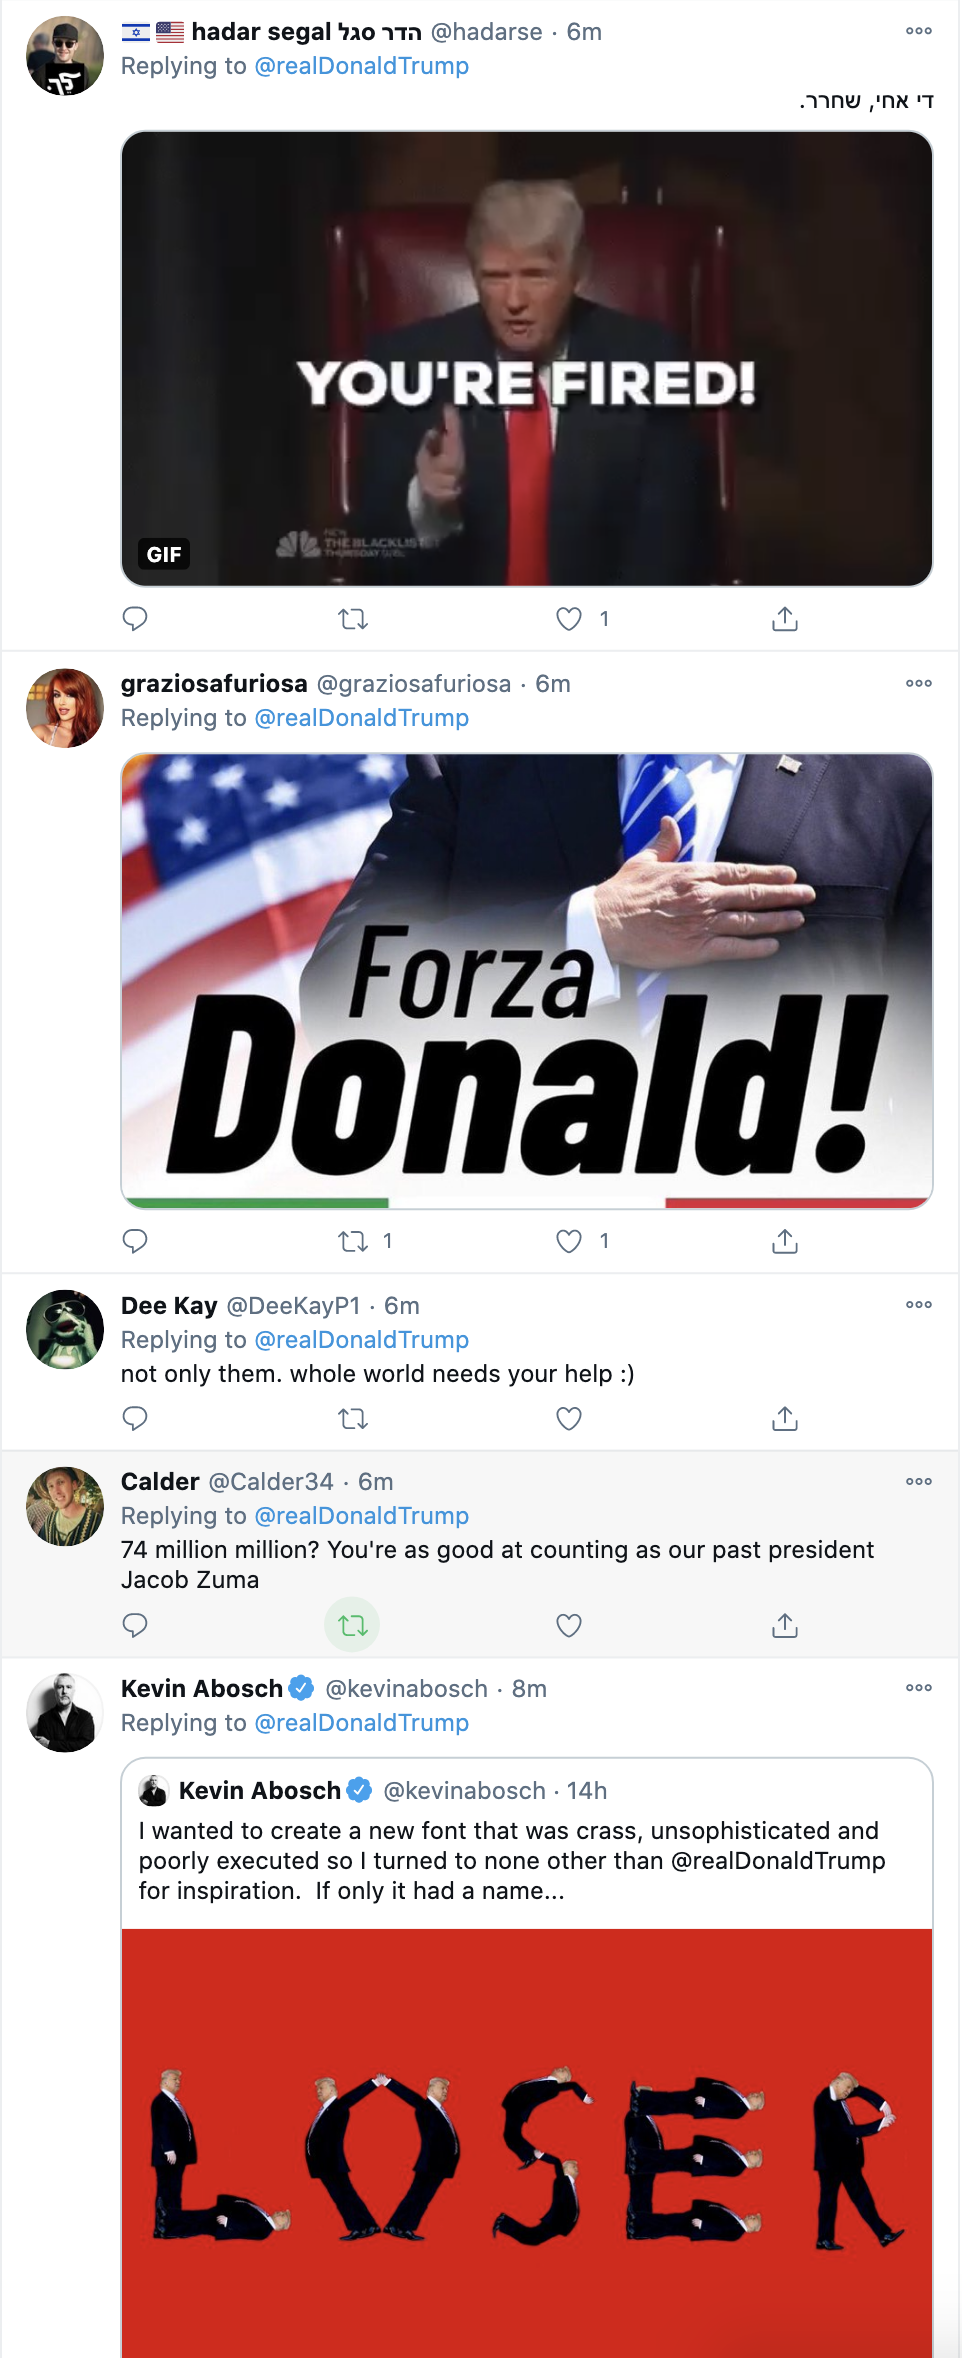 Screen-Shot-2020-11-30-at-7.50.12-AM Trump Suffers Monday Morning Mental Malfunction Corruption Featured National Security Politics Top Stories